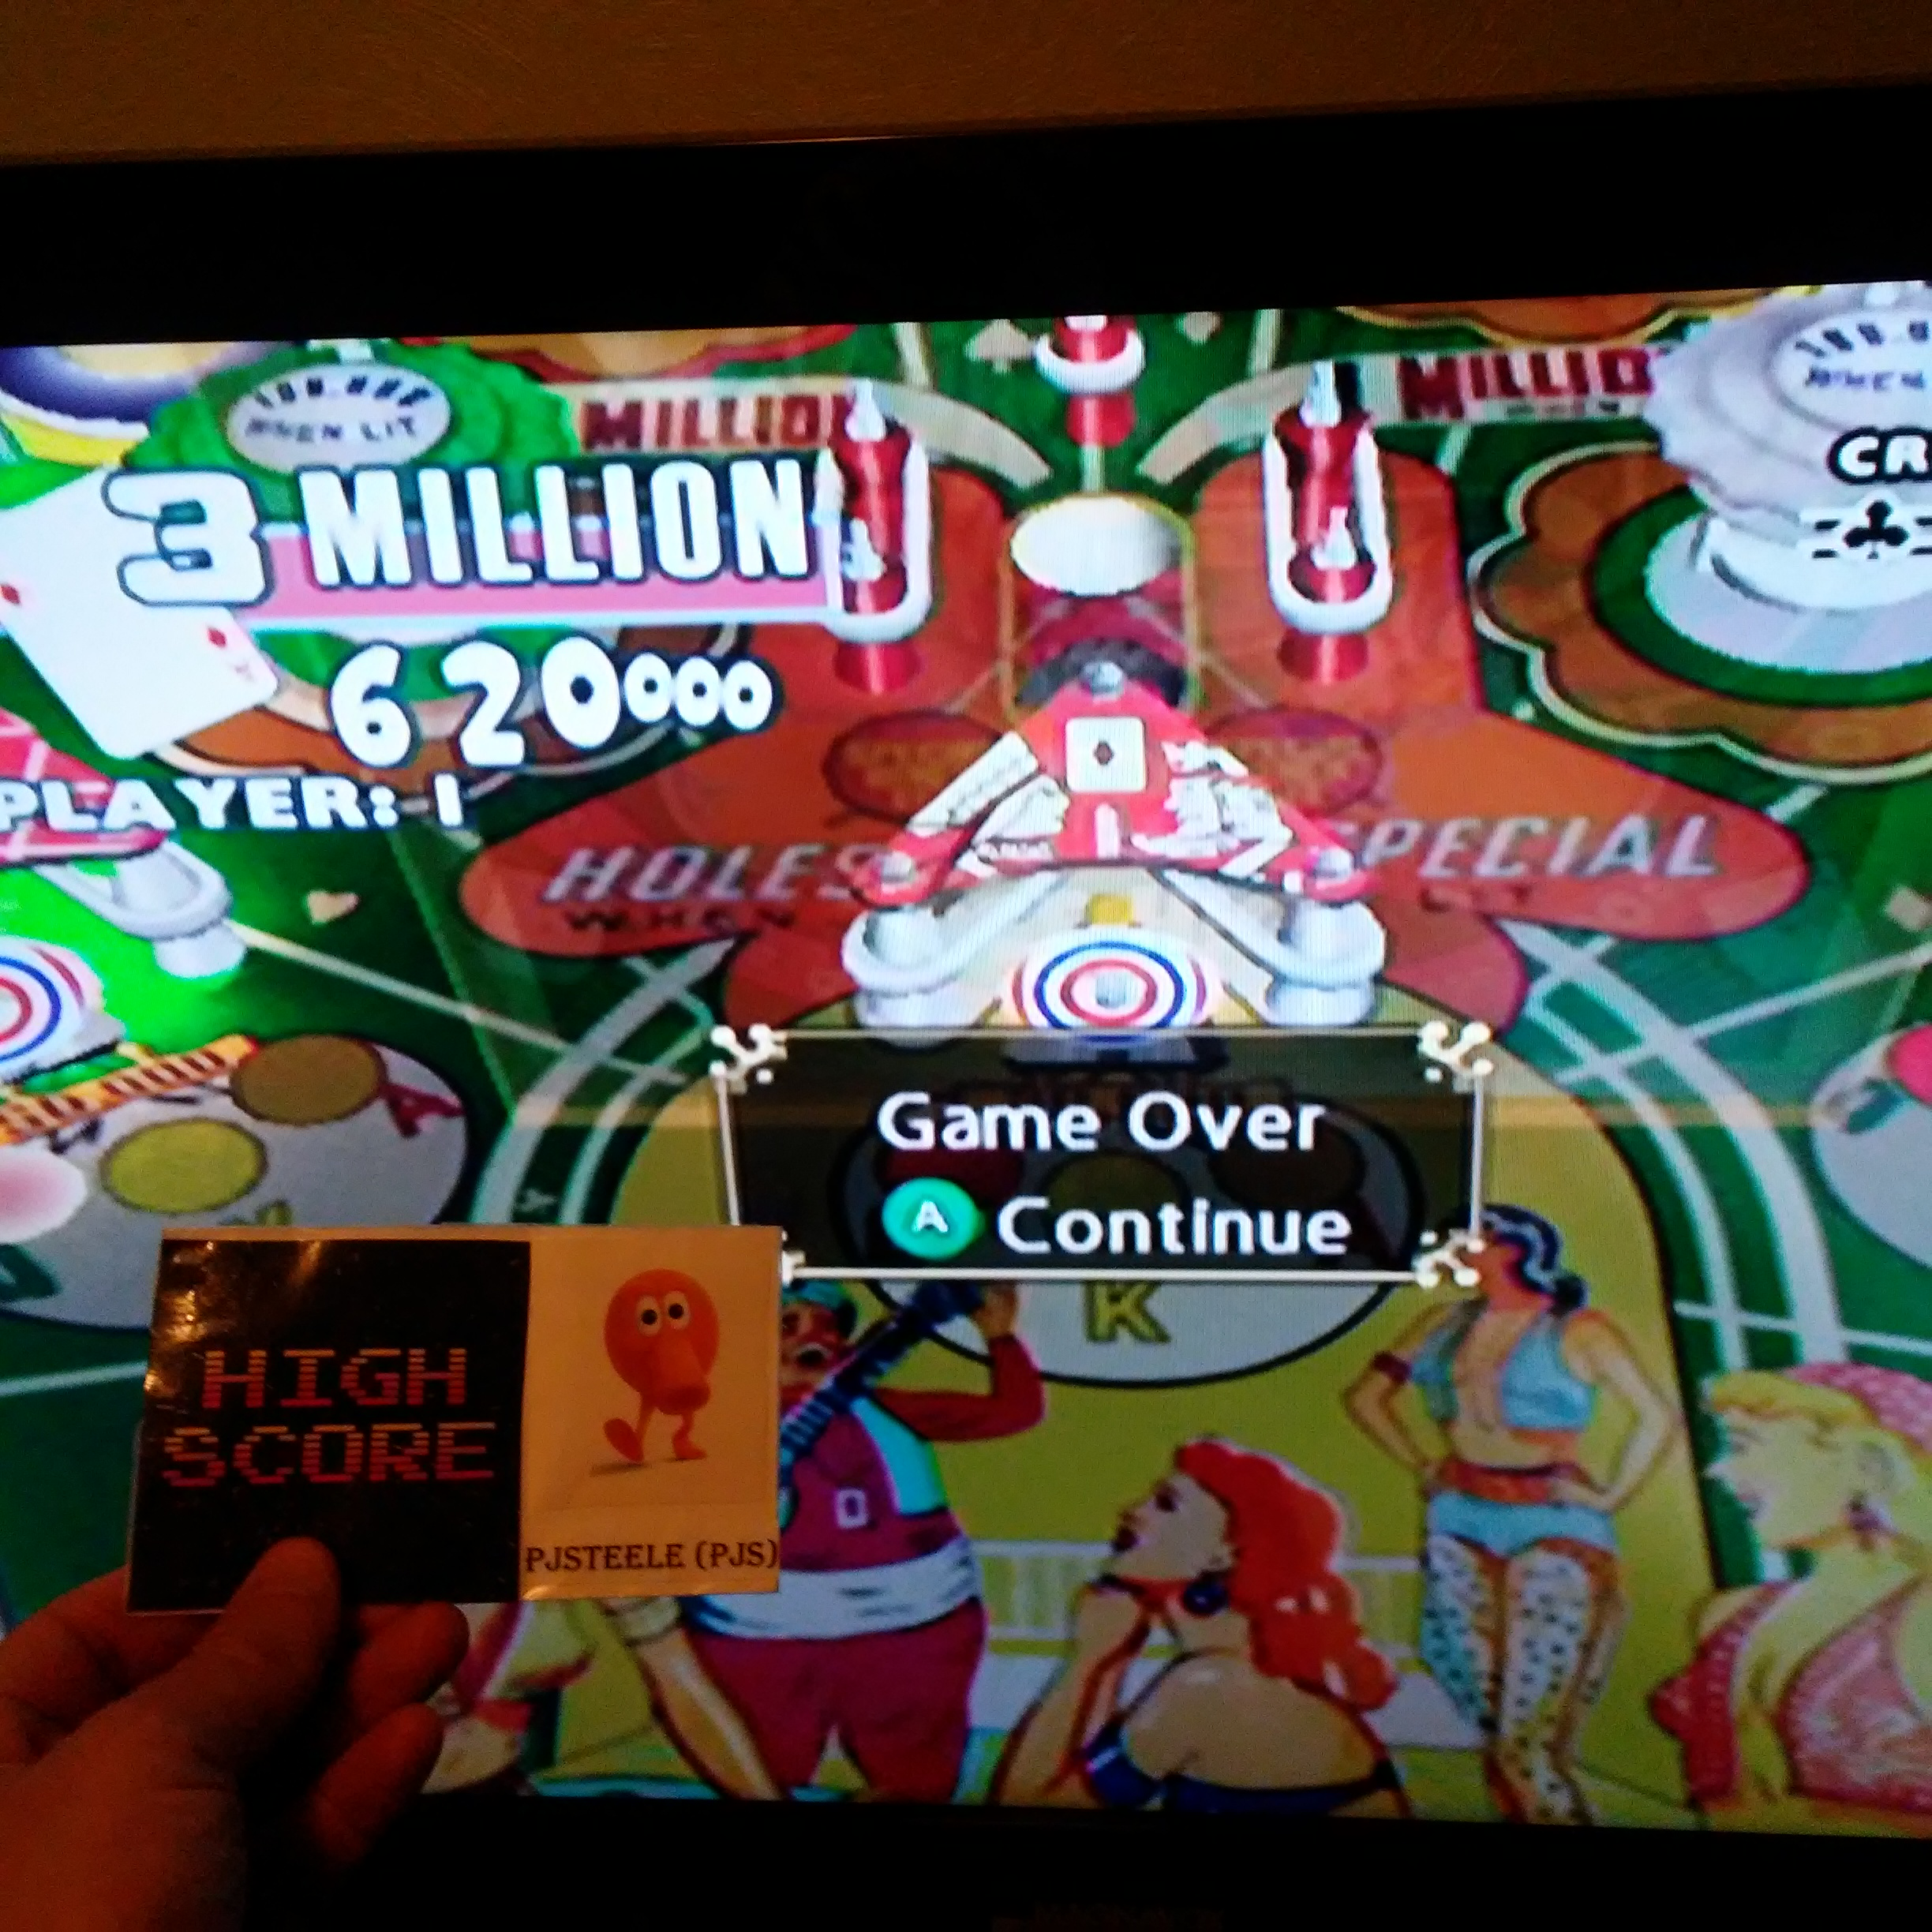 Pjsteele: Pinball Hall of Fame: The Gottlieb Collection: Ace High [5 Balls] (GameCube) 3,620,000 points on 2018-01-17 19:48:47